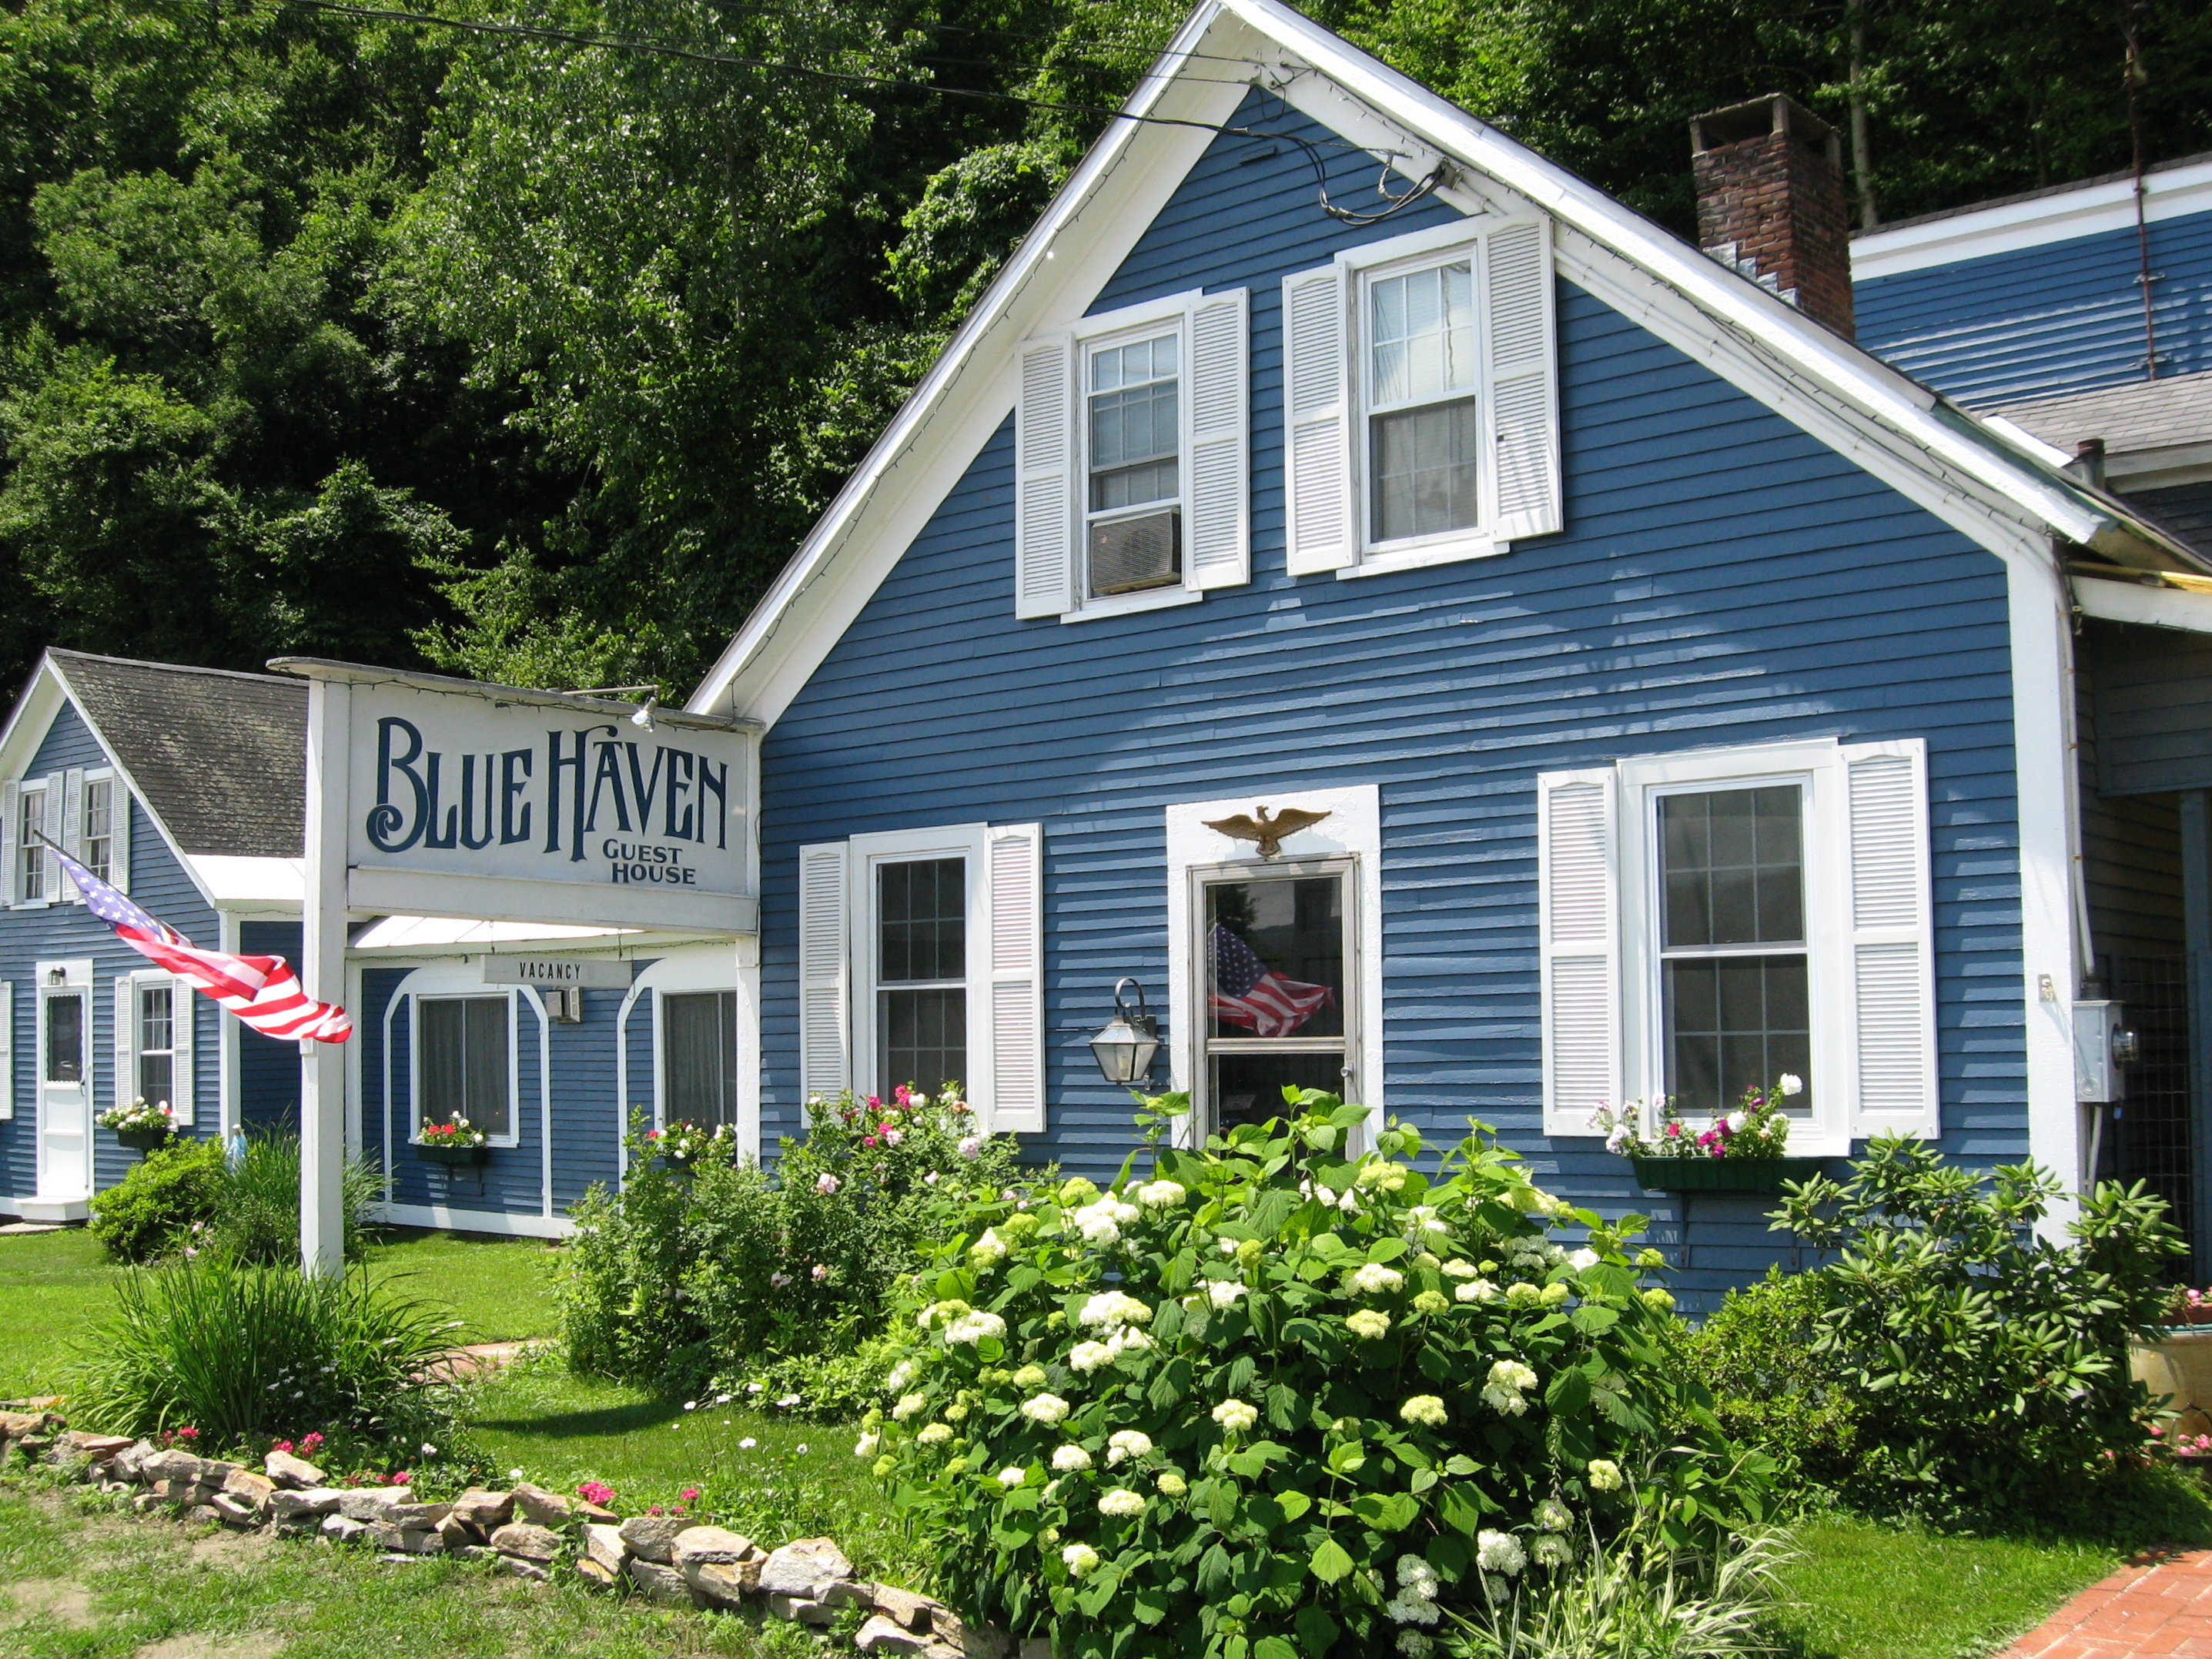 Blue Haven Bed & Breakfast